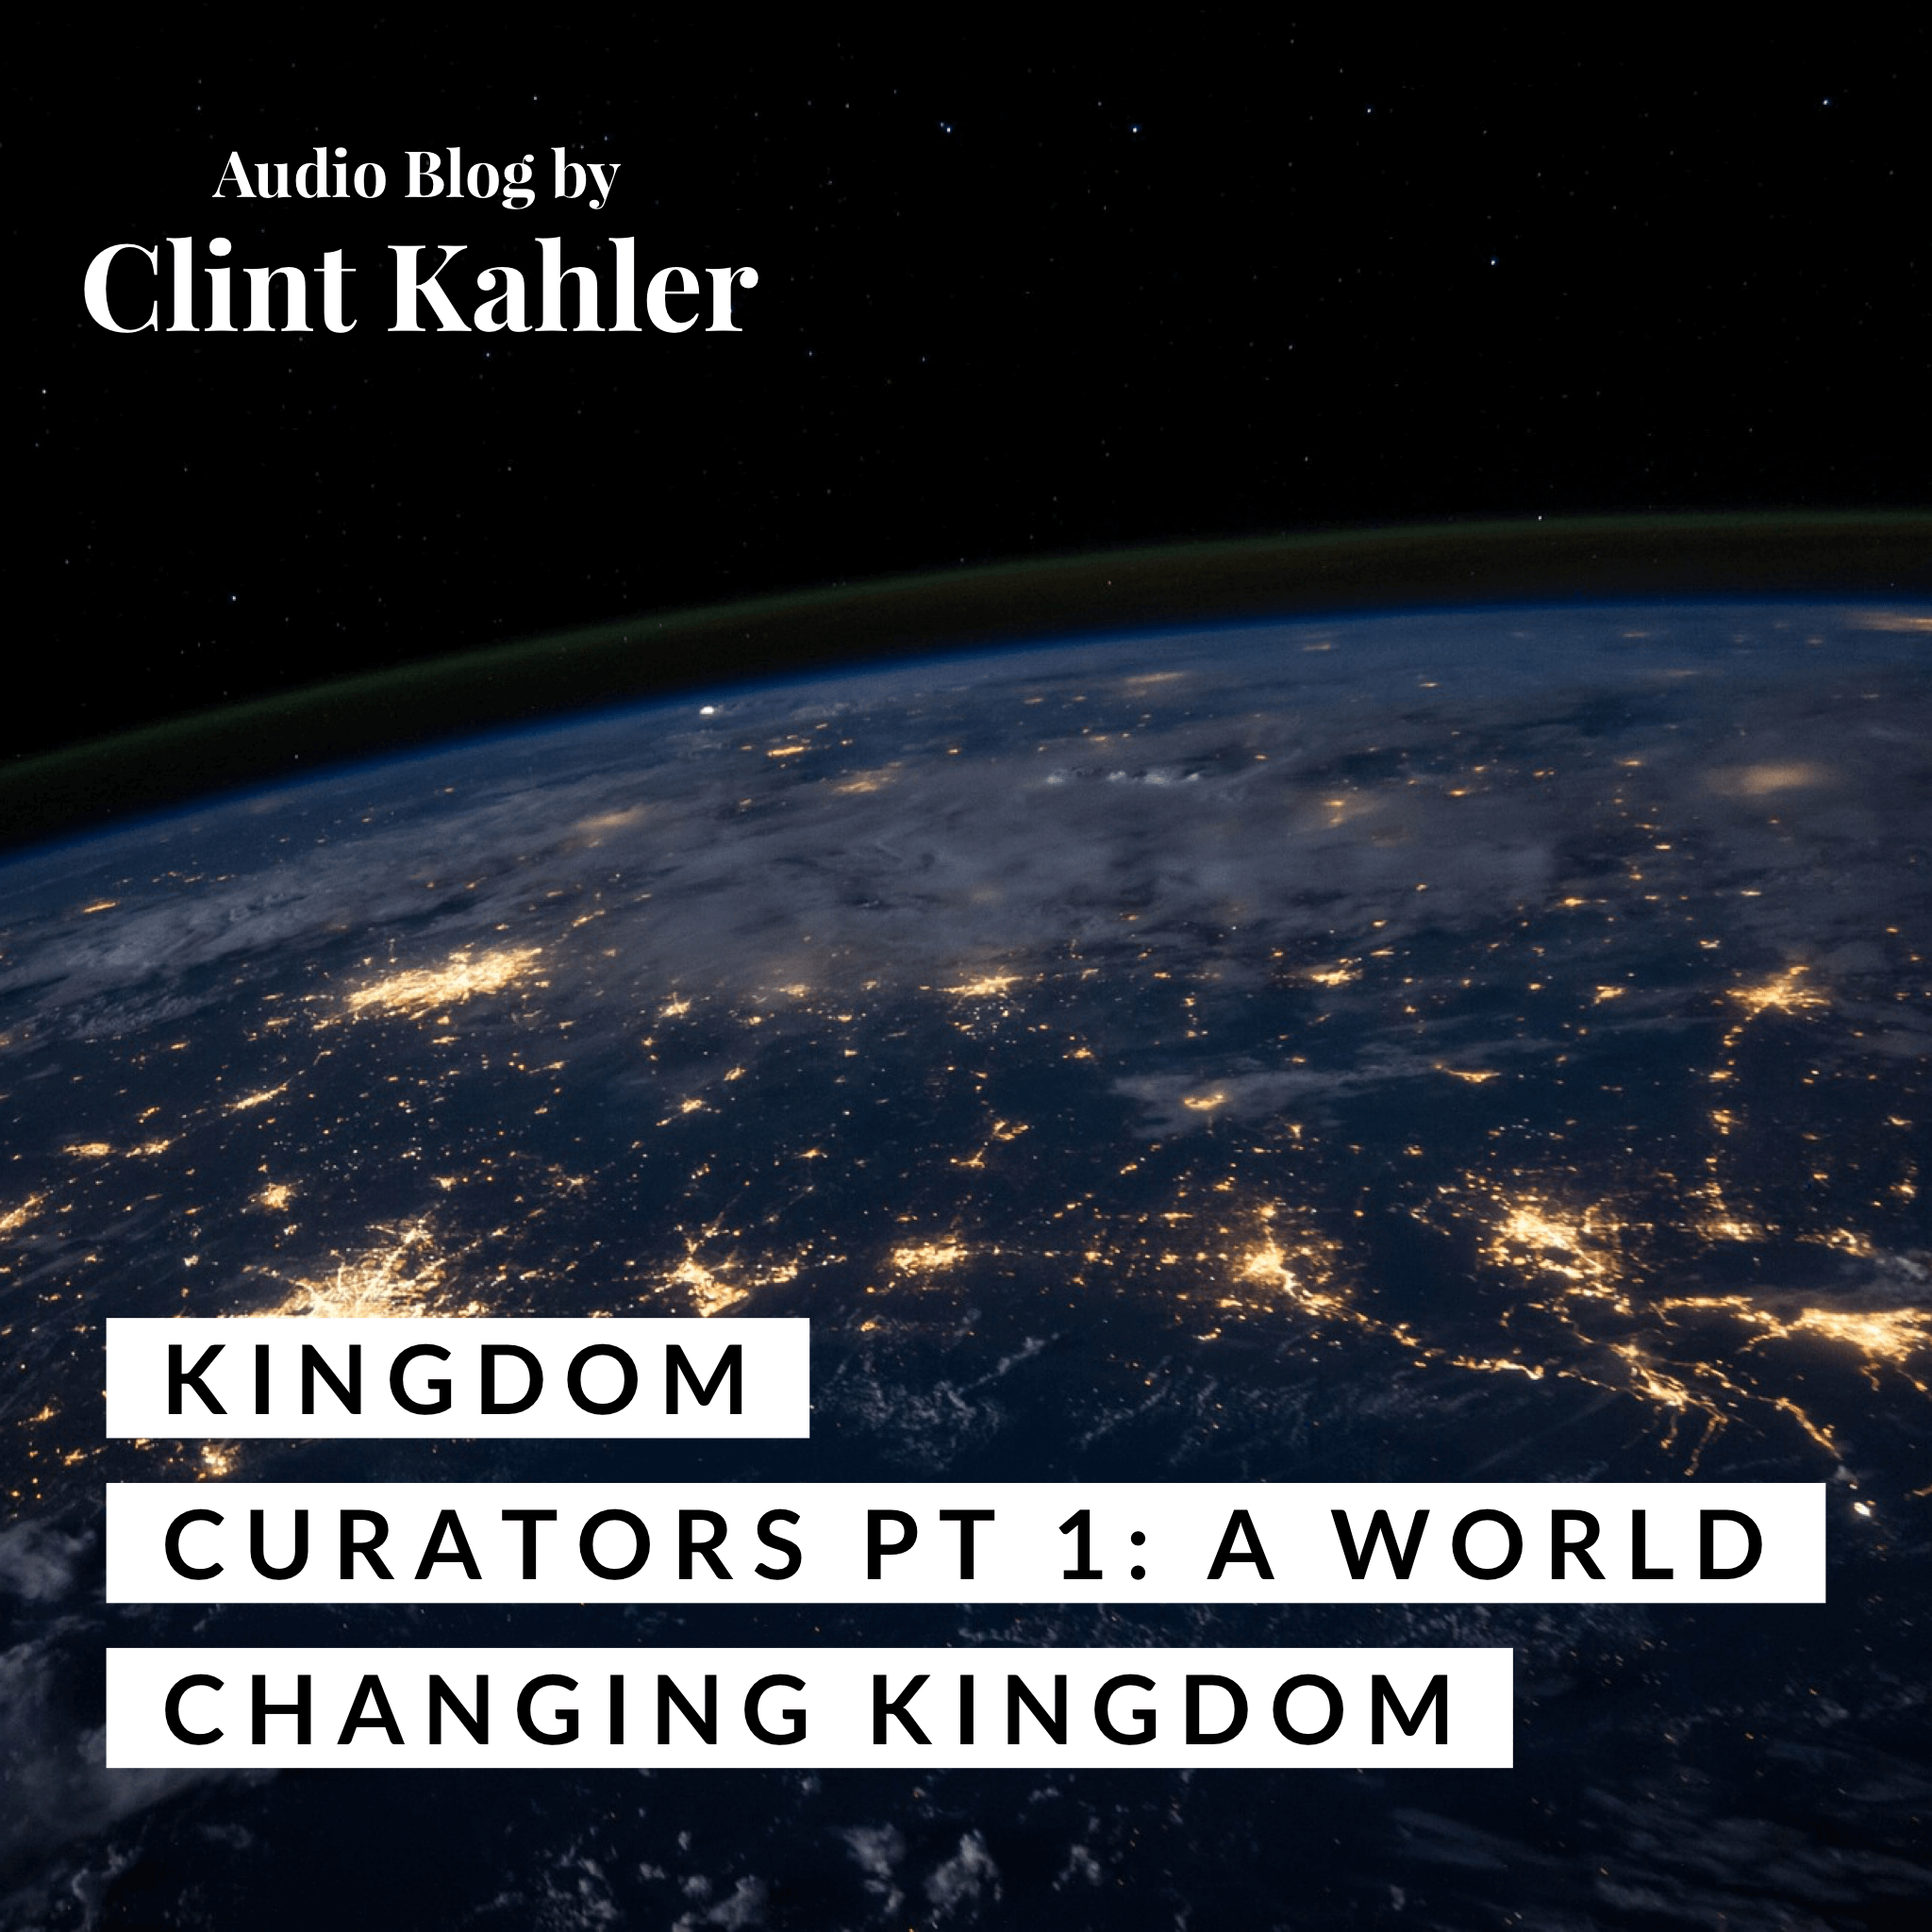 Kingdom Curators Part 1: A World Changing Kingdom | AUDIO BLOG BY CLINT KAHLER